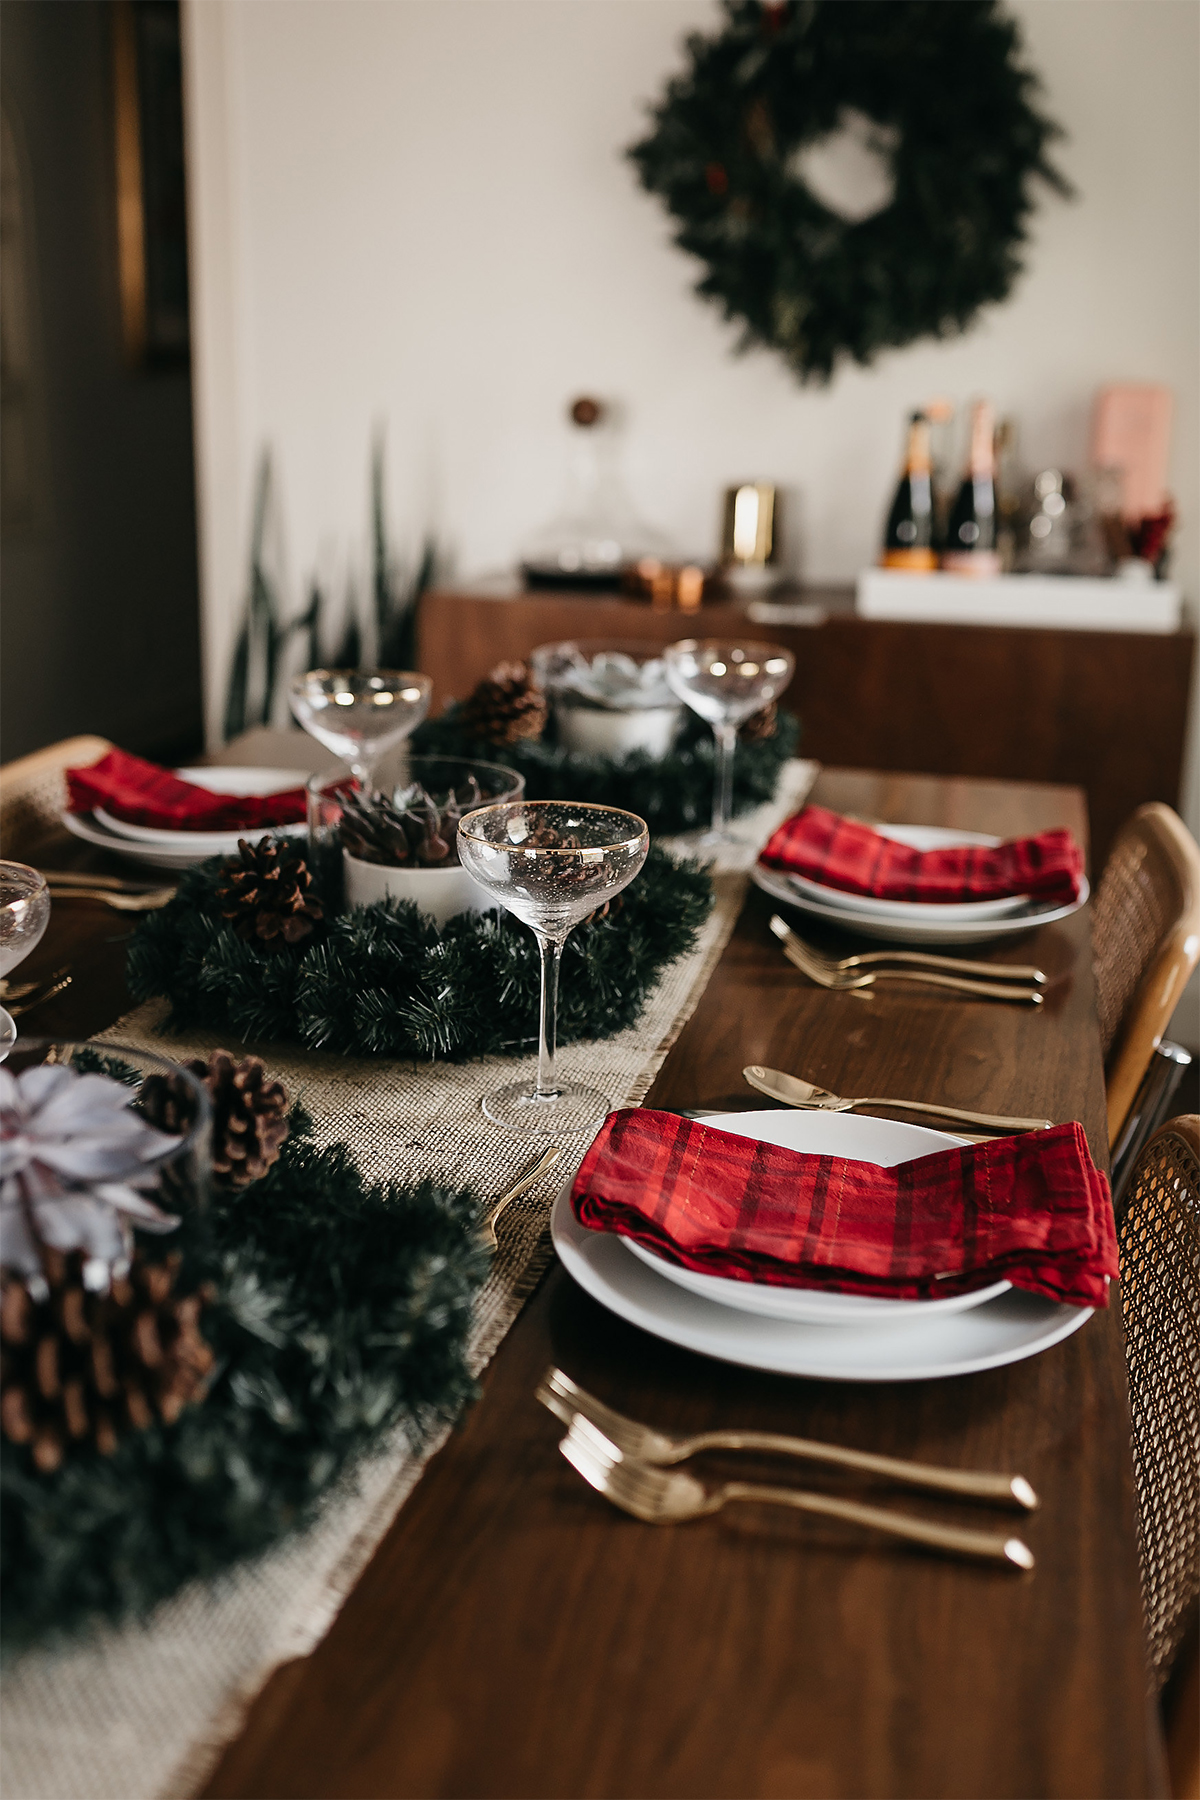 Fashion Jackson Christmas Tablescape Red Plaid Napkins White Dinnerware Gold Flatware Gold Champagne Flutes Wreath Pine Cone Centerpiece 4